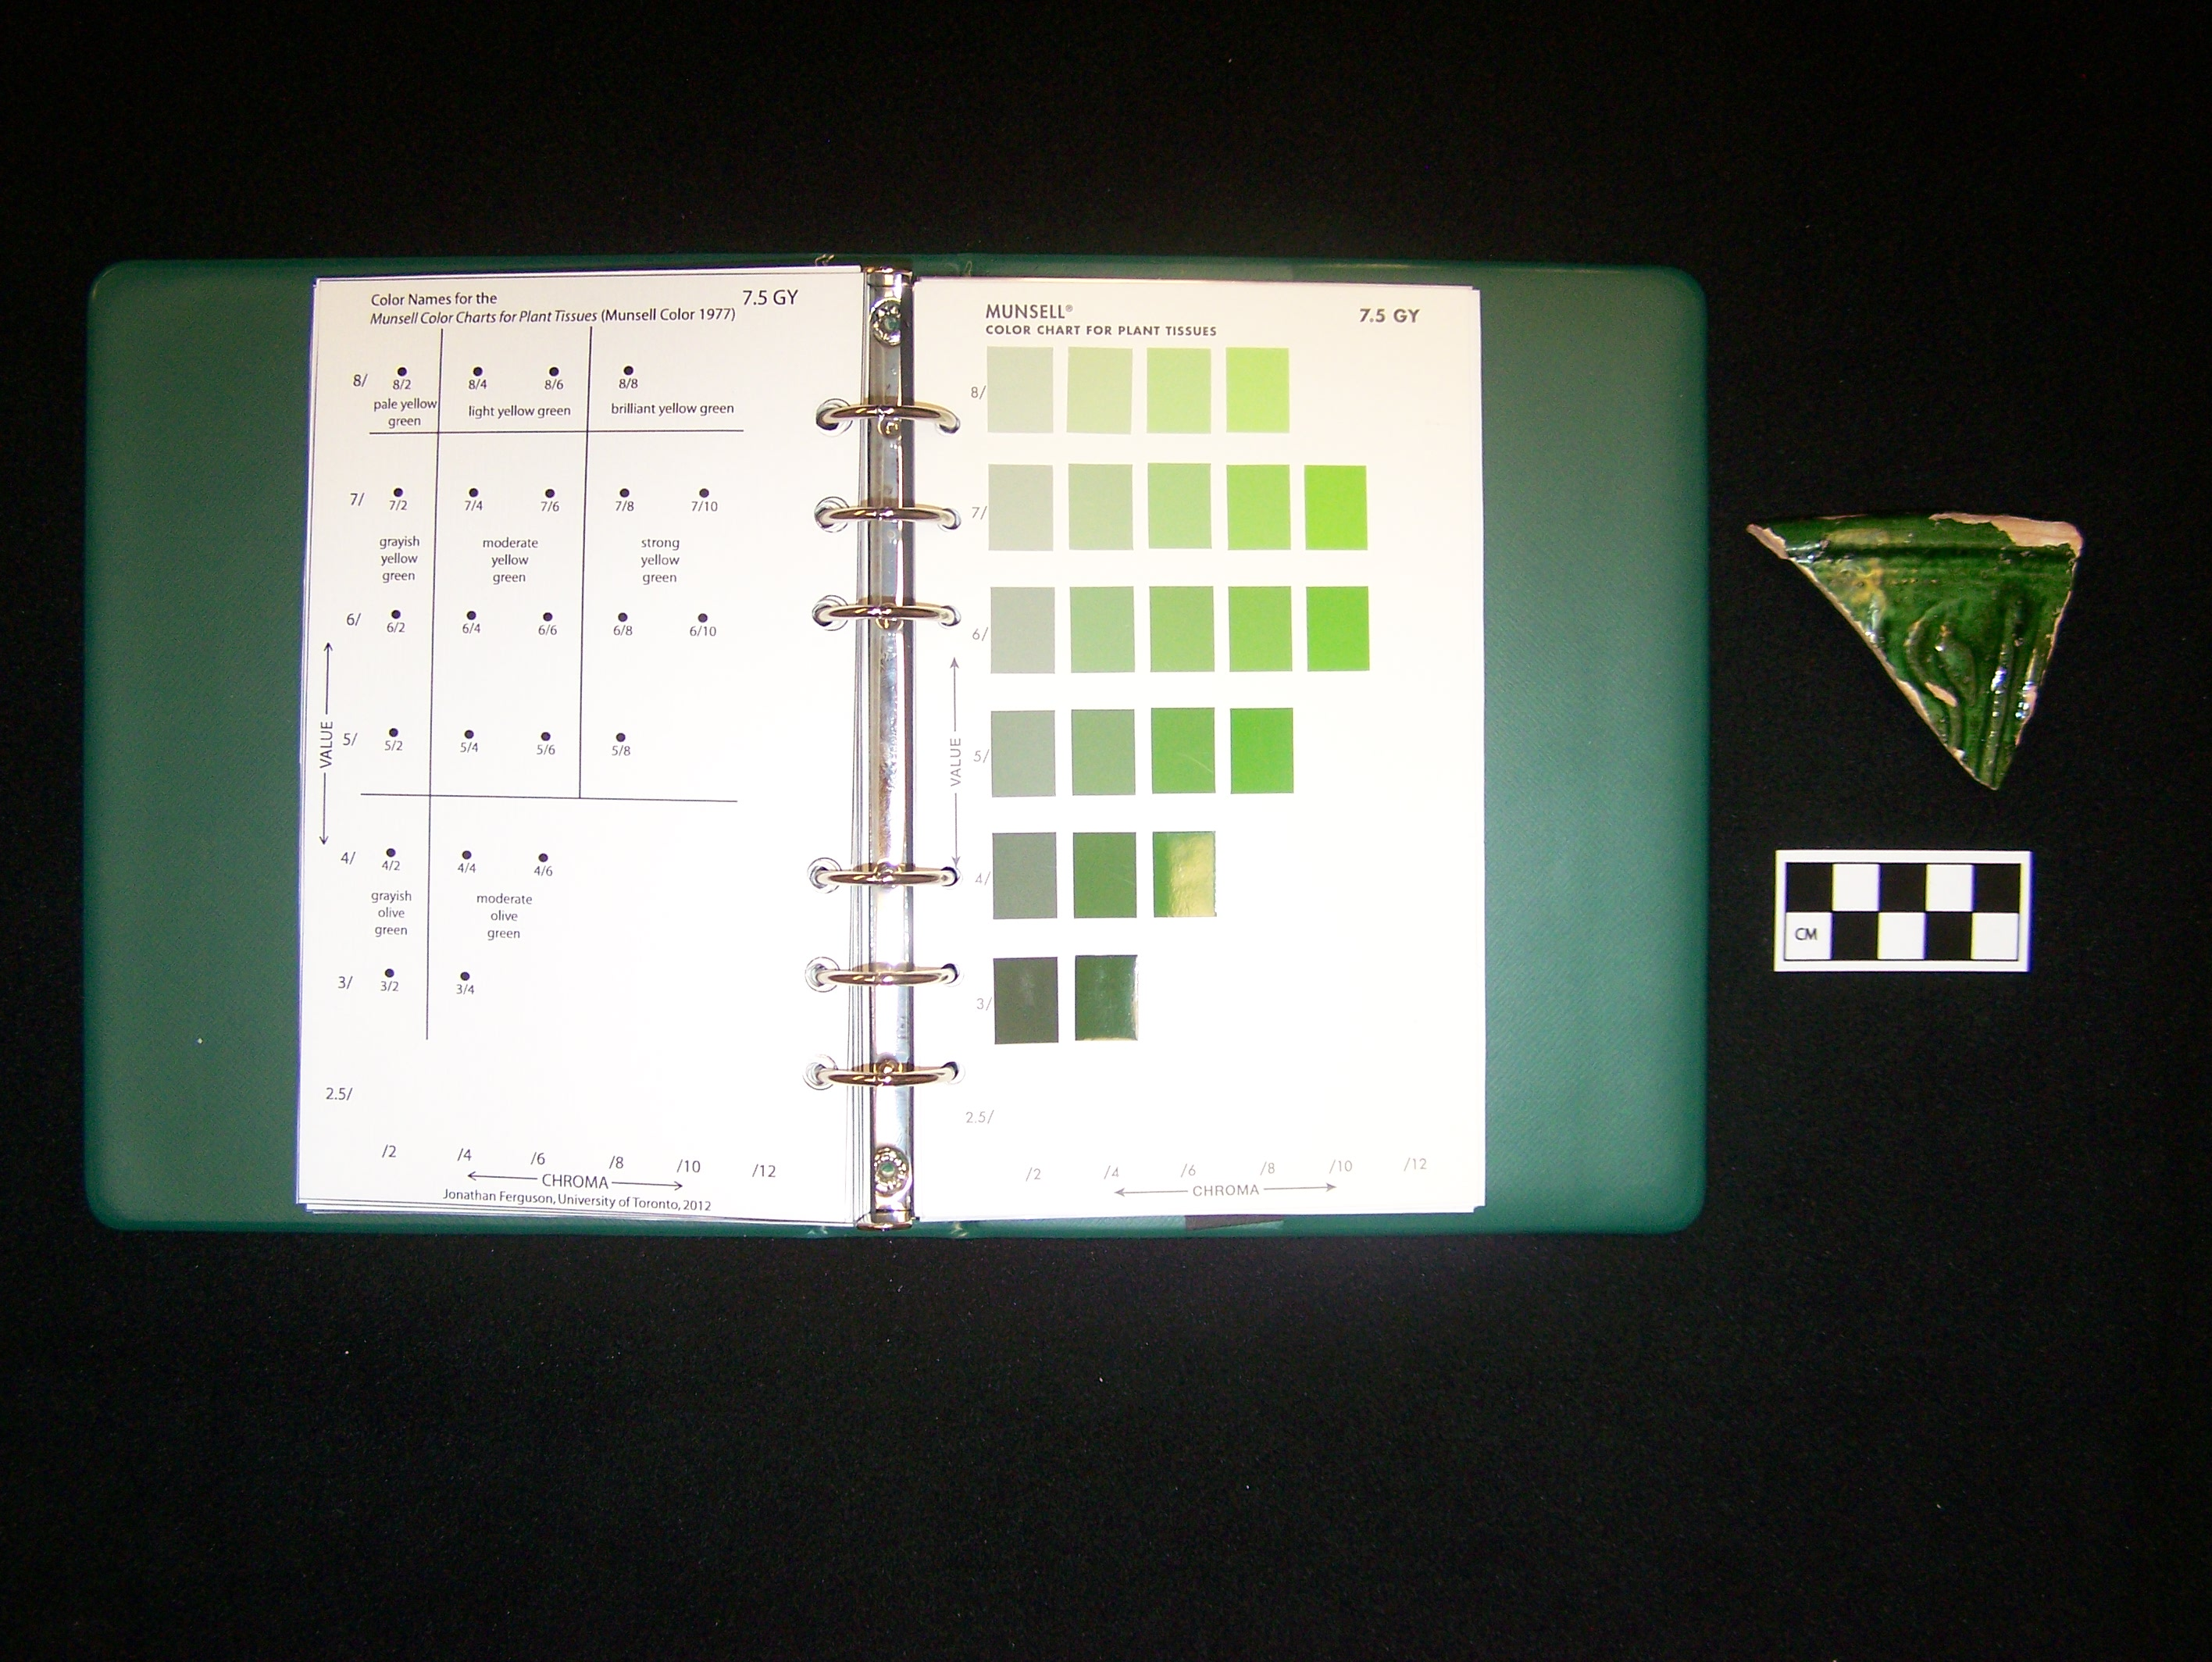 Tmap munsell the 75gy hue page of the munsell color charts for plant tissues munsell color 1977 showing the proposed color name chart inserted on the left hand page nvjuhfo Gallery